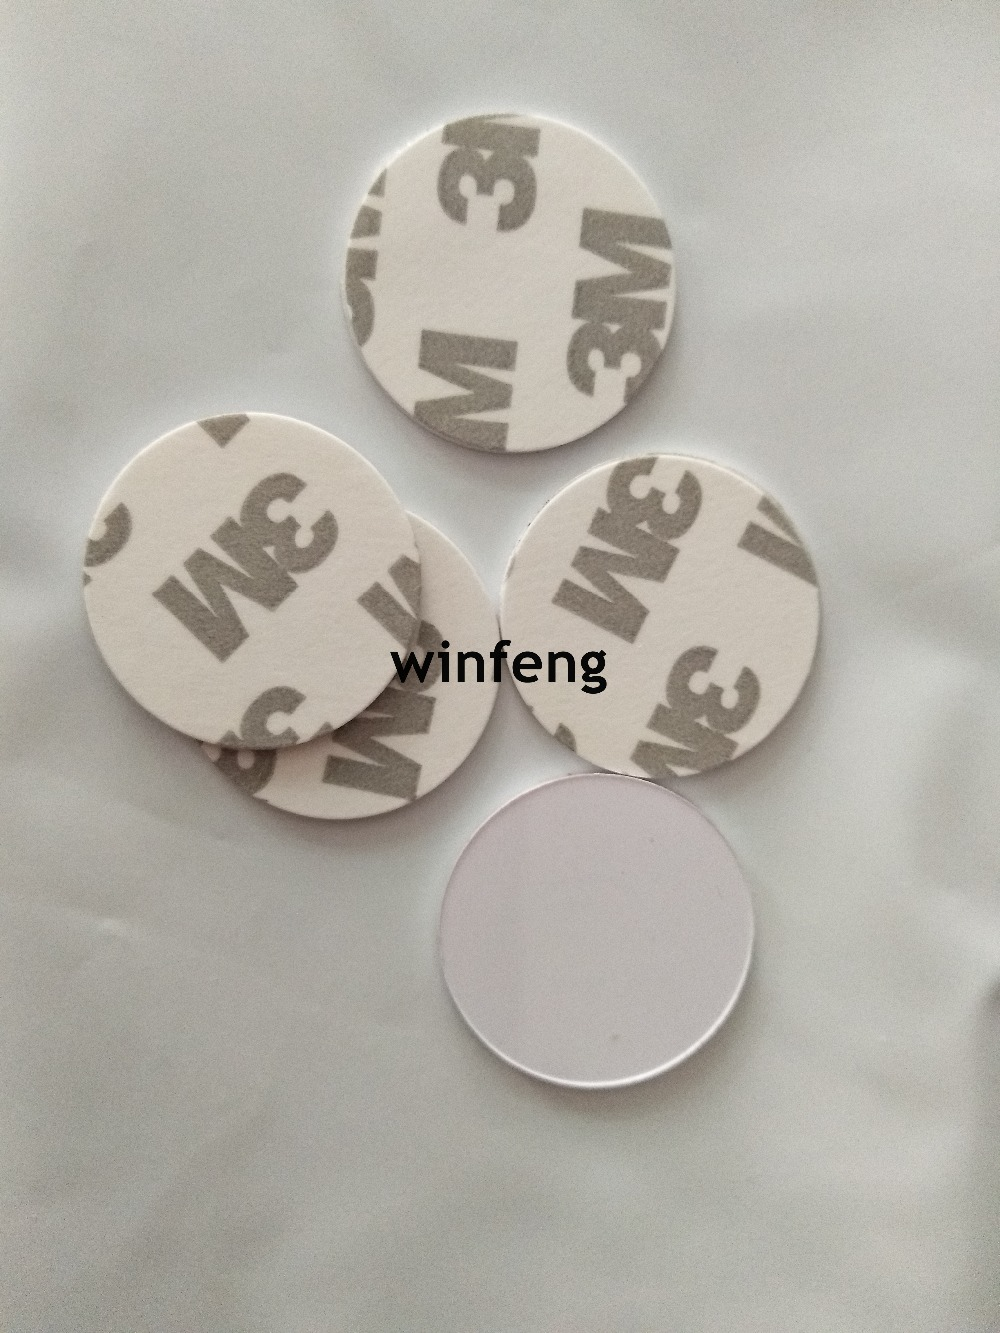 100pcs/lot 25mm PVC 125Khz RFID Tag Small Size TK4100 Passive RFID Coin Disc with 3M Adhesive Sticker for Access Control adhesive sticker tag for clothing size labeling and classification m size 15 x 132